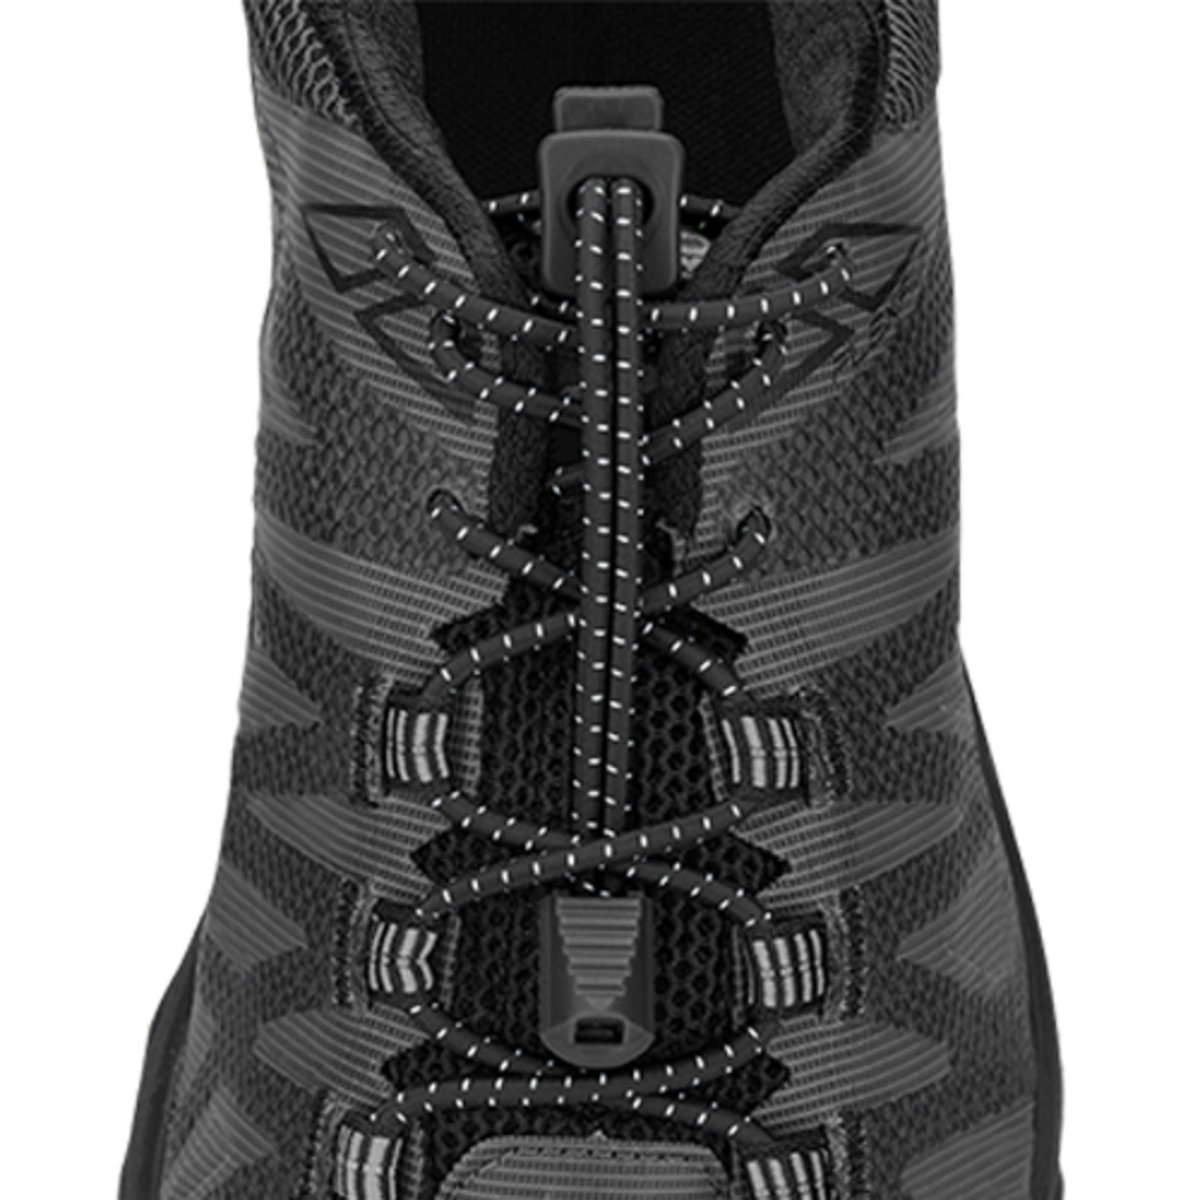 鞋帶 Run Laces-Black/Black-0015